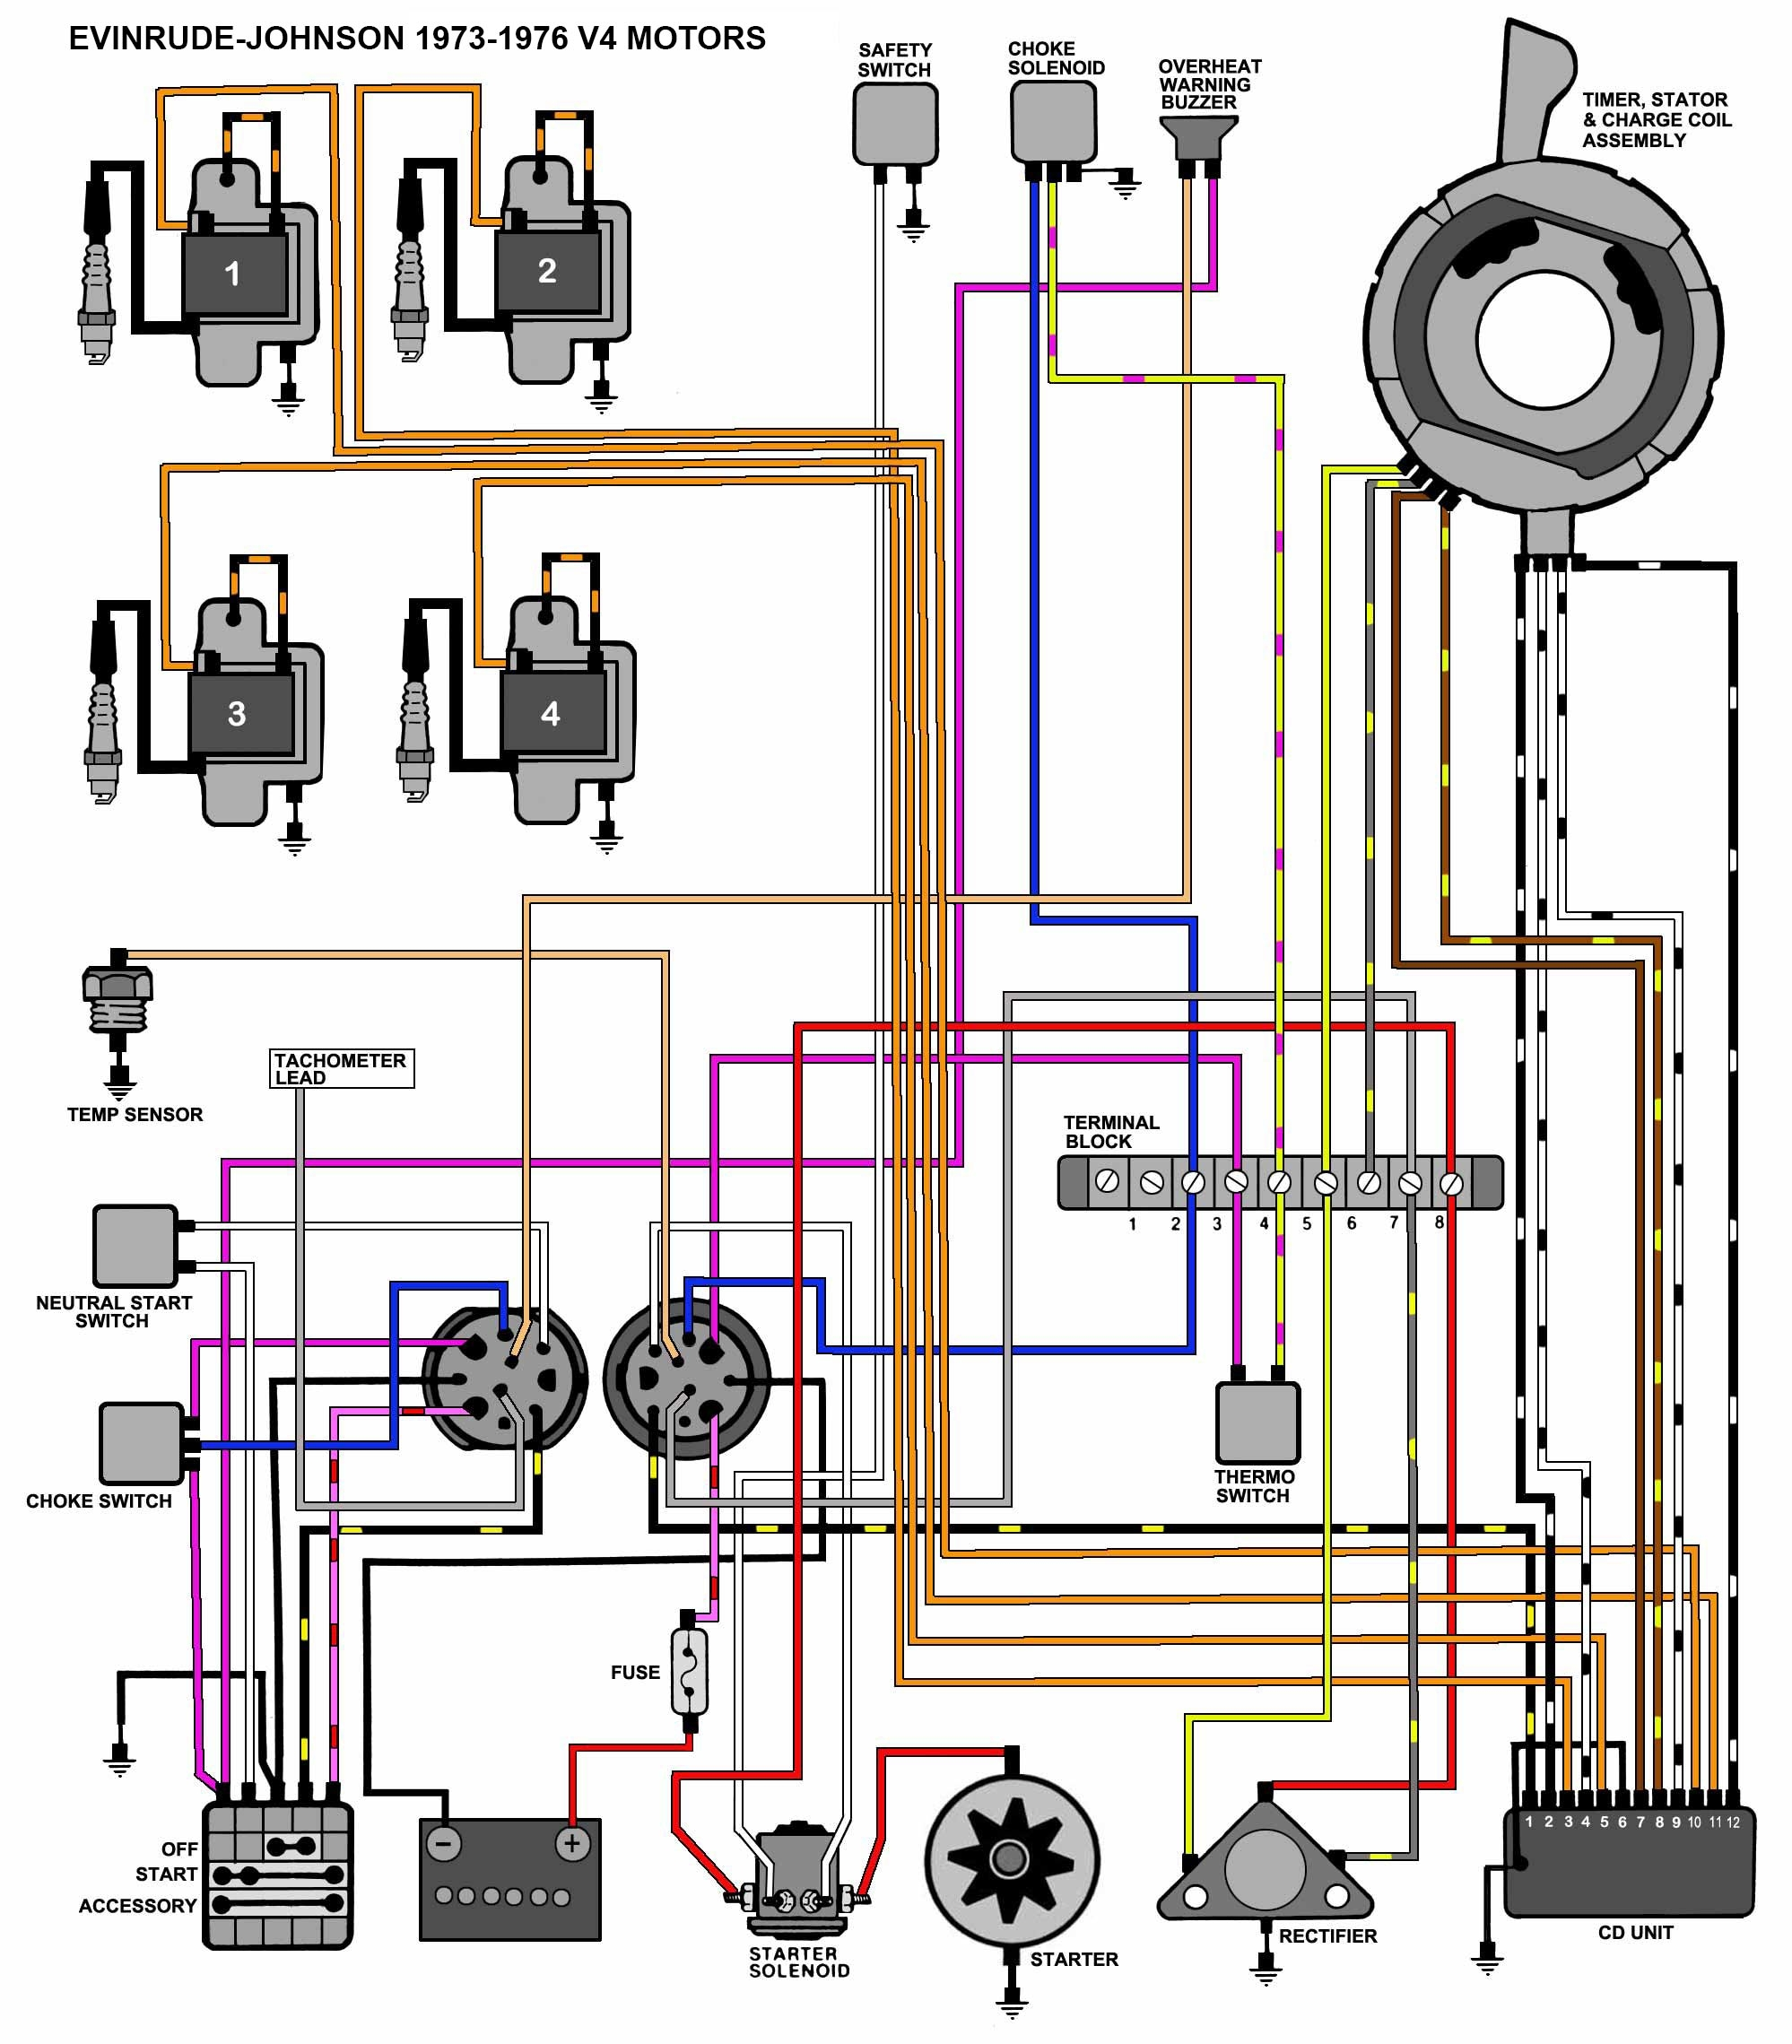 evinrude wiring diagram outboards Download-evinrude outboard wiring diagram new evinrude johnson outboard rh lambdarepos org 8-s